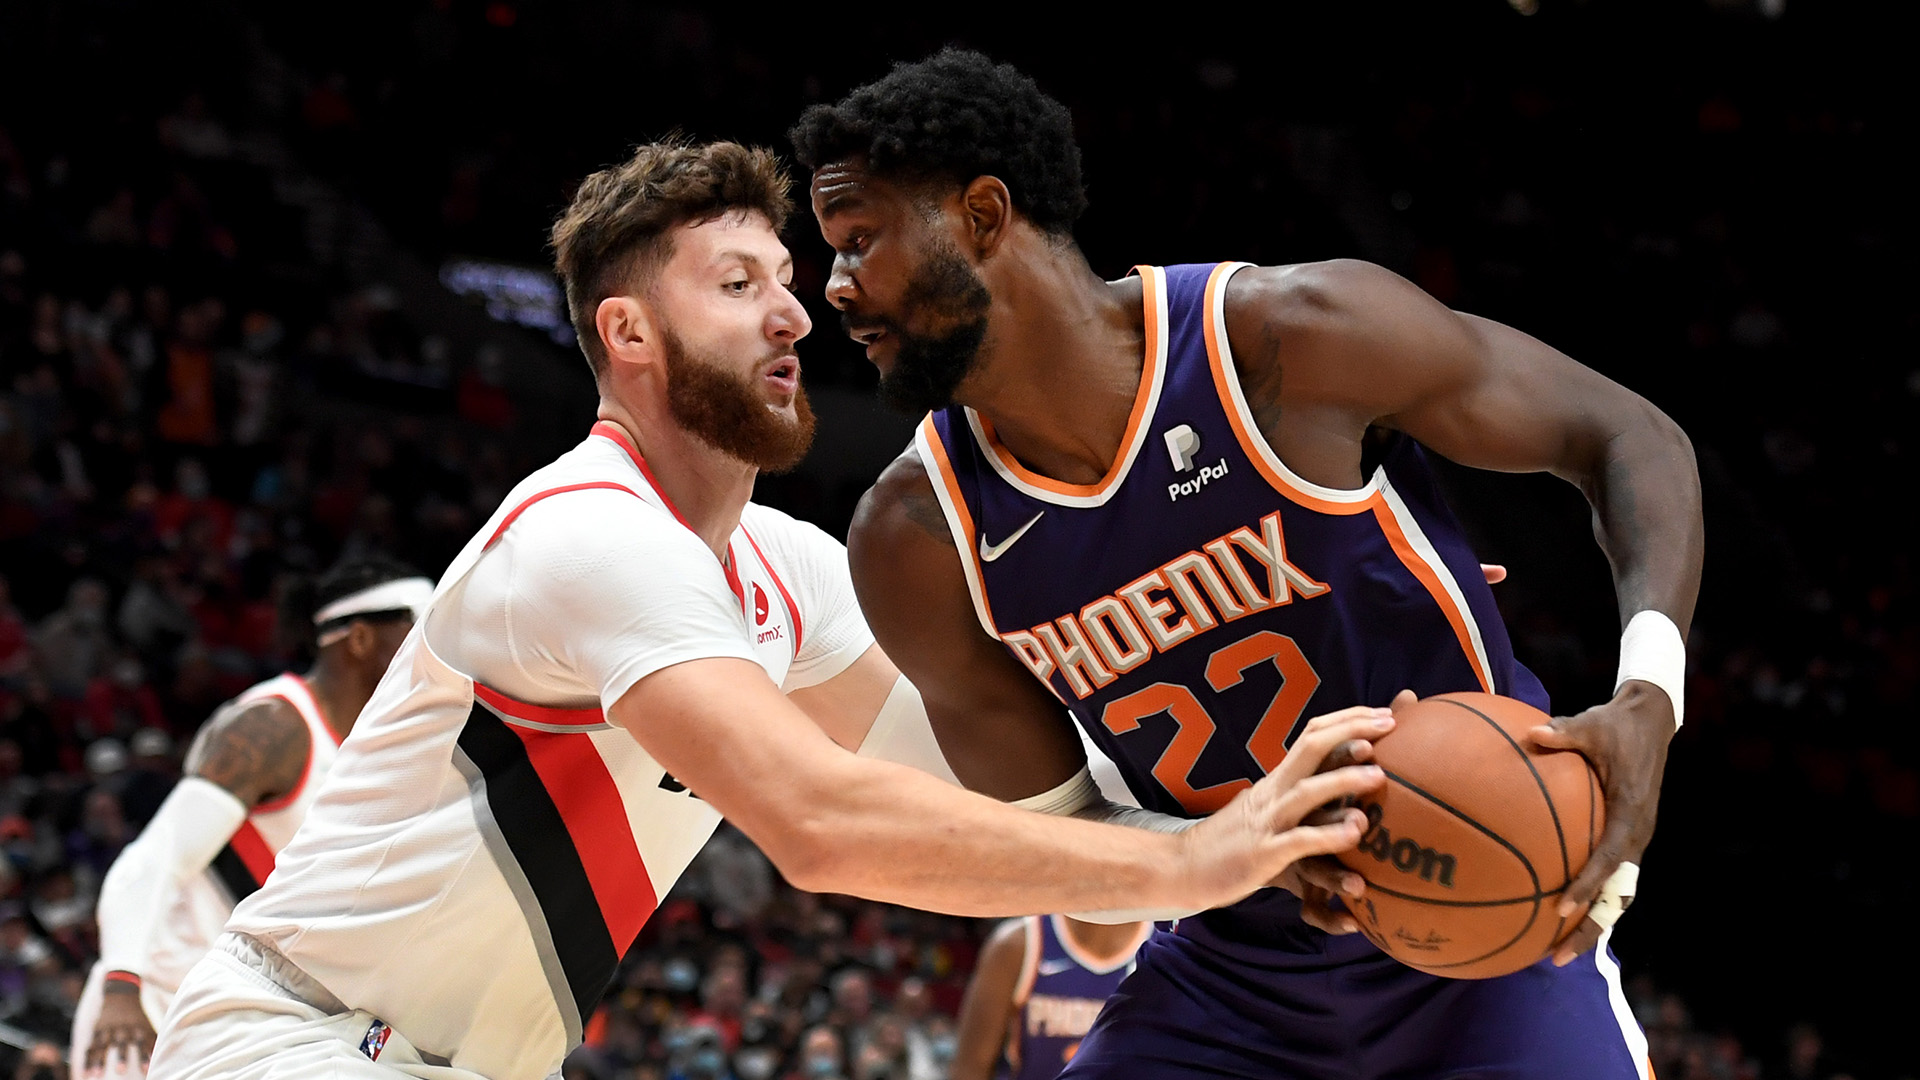 Hot-shooting Blazers grab double-digit lead on Suns